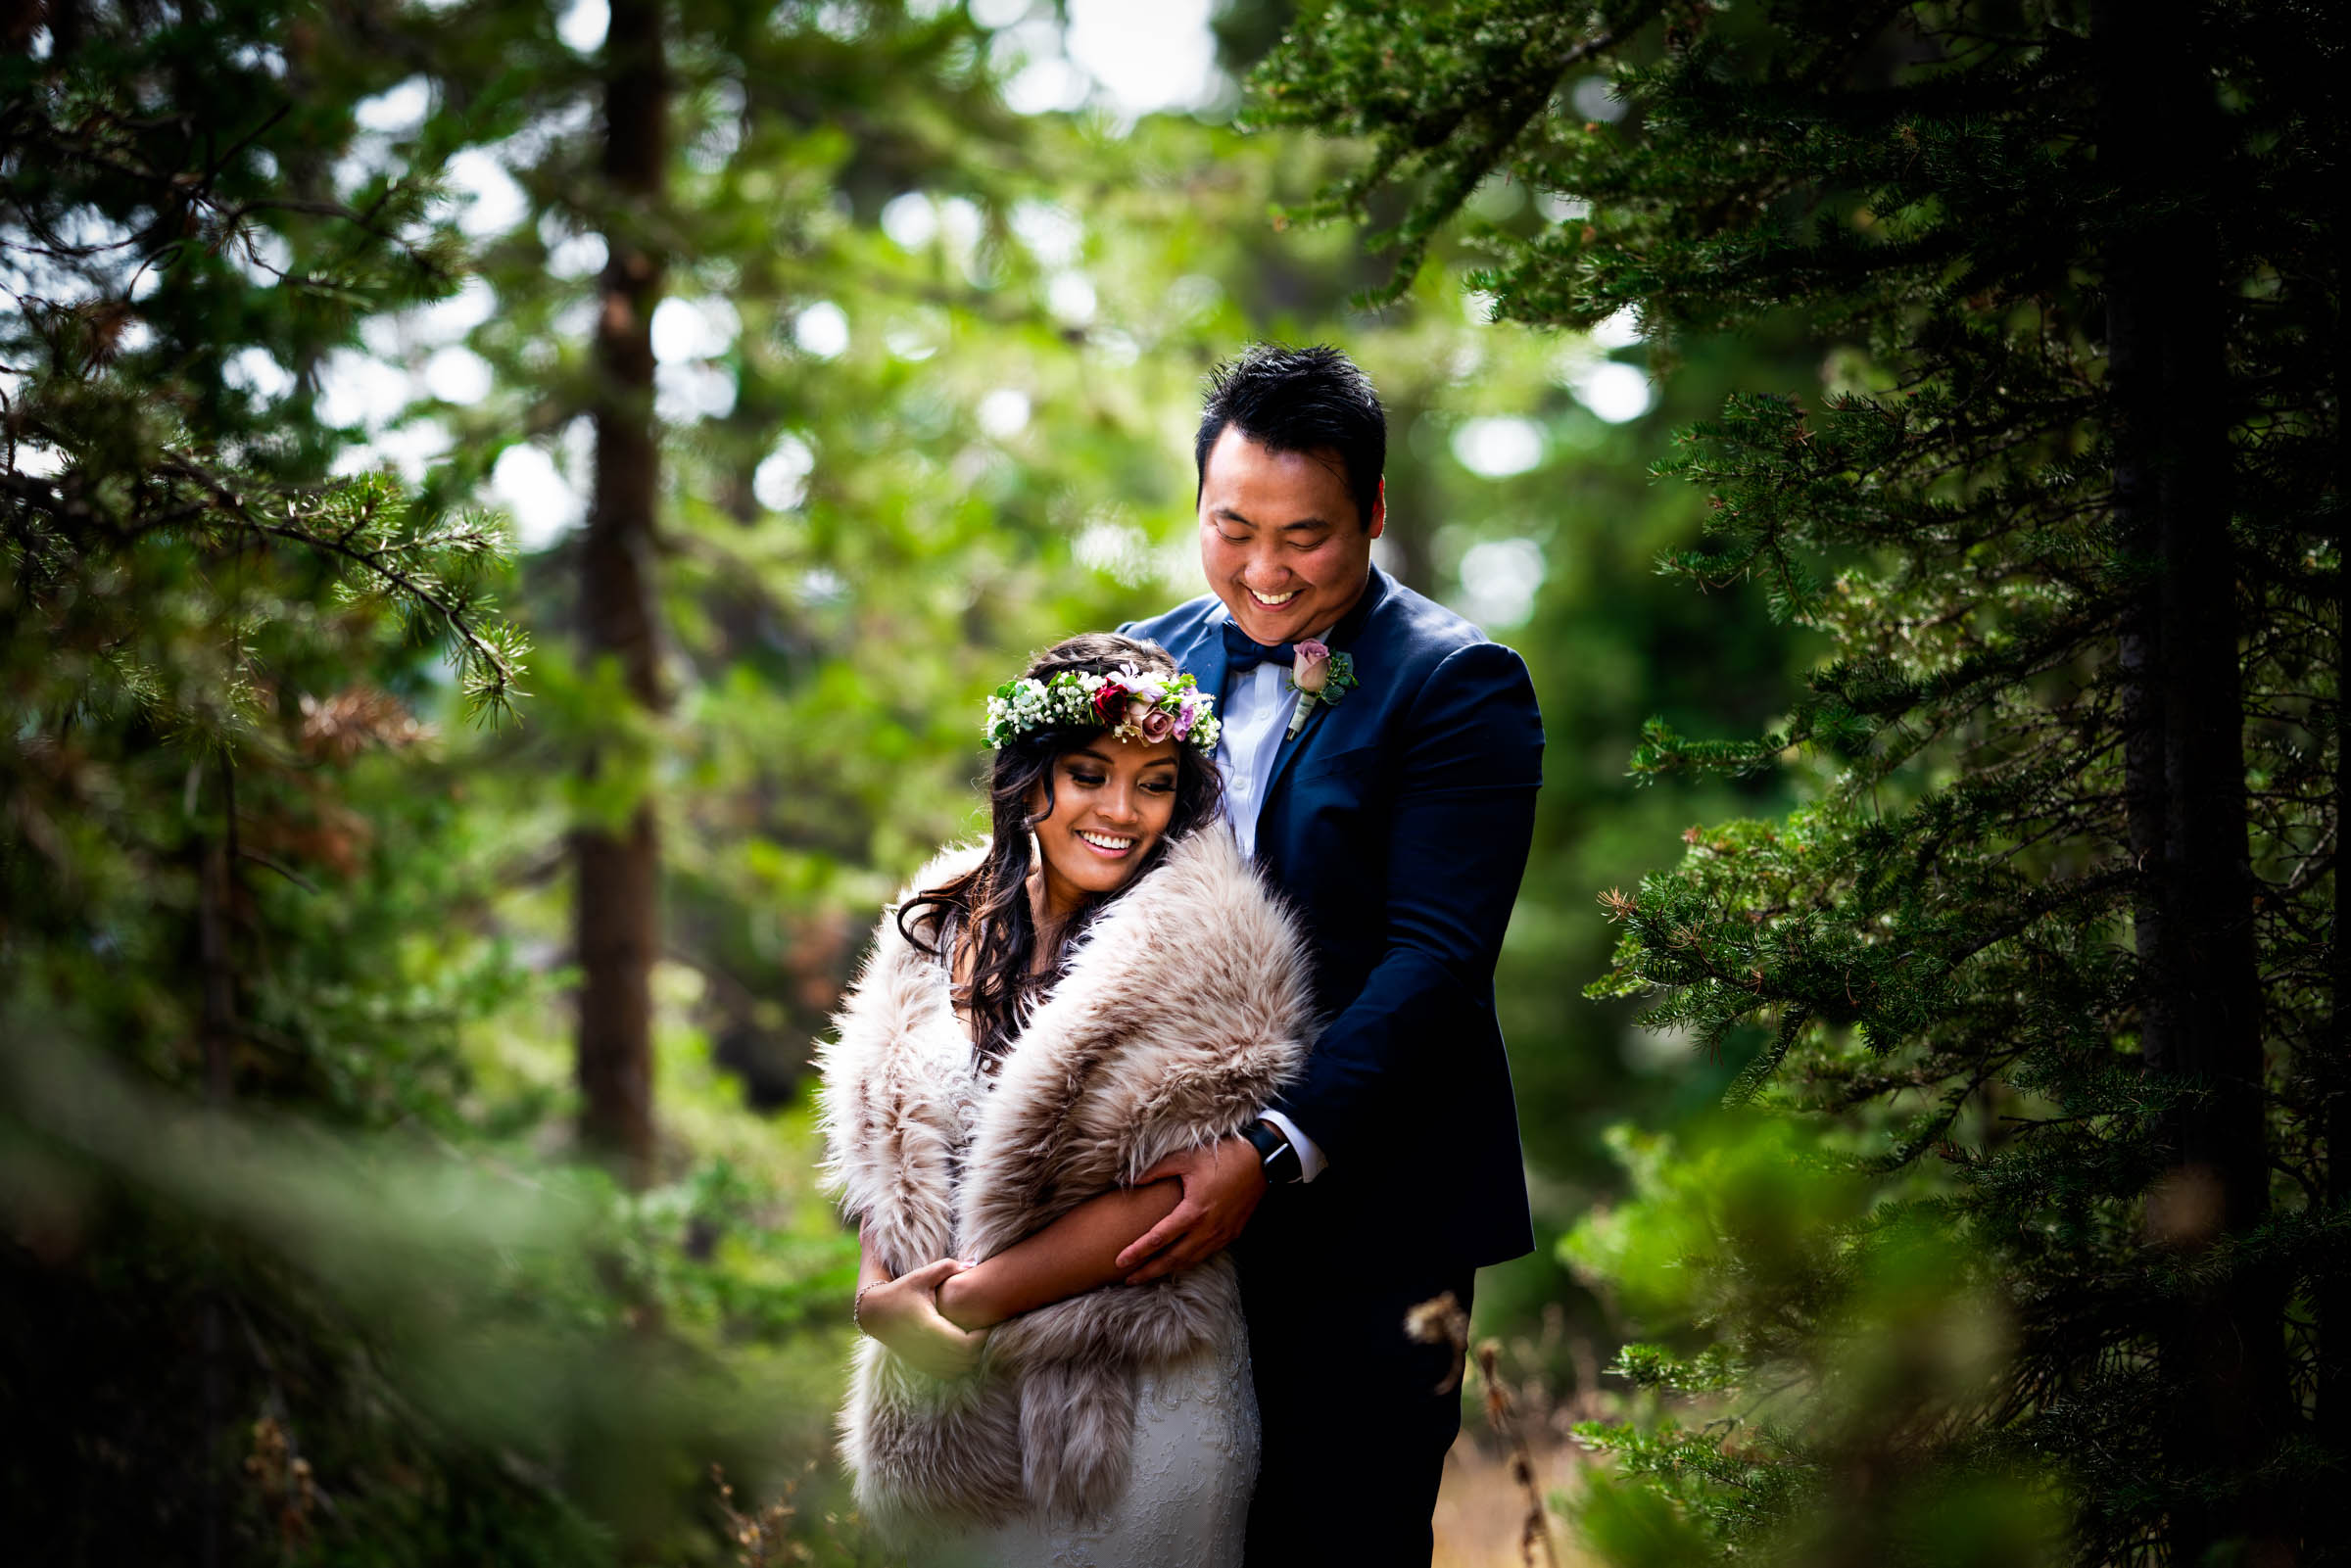 Breckenridge_Colorado_Wedding_DaraLynne_Nathan046-2.jpg